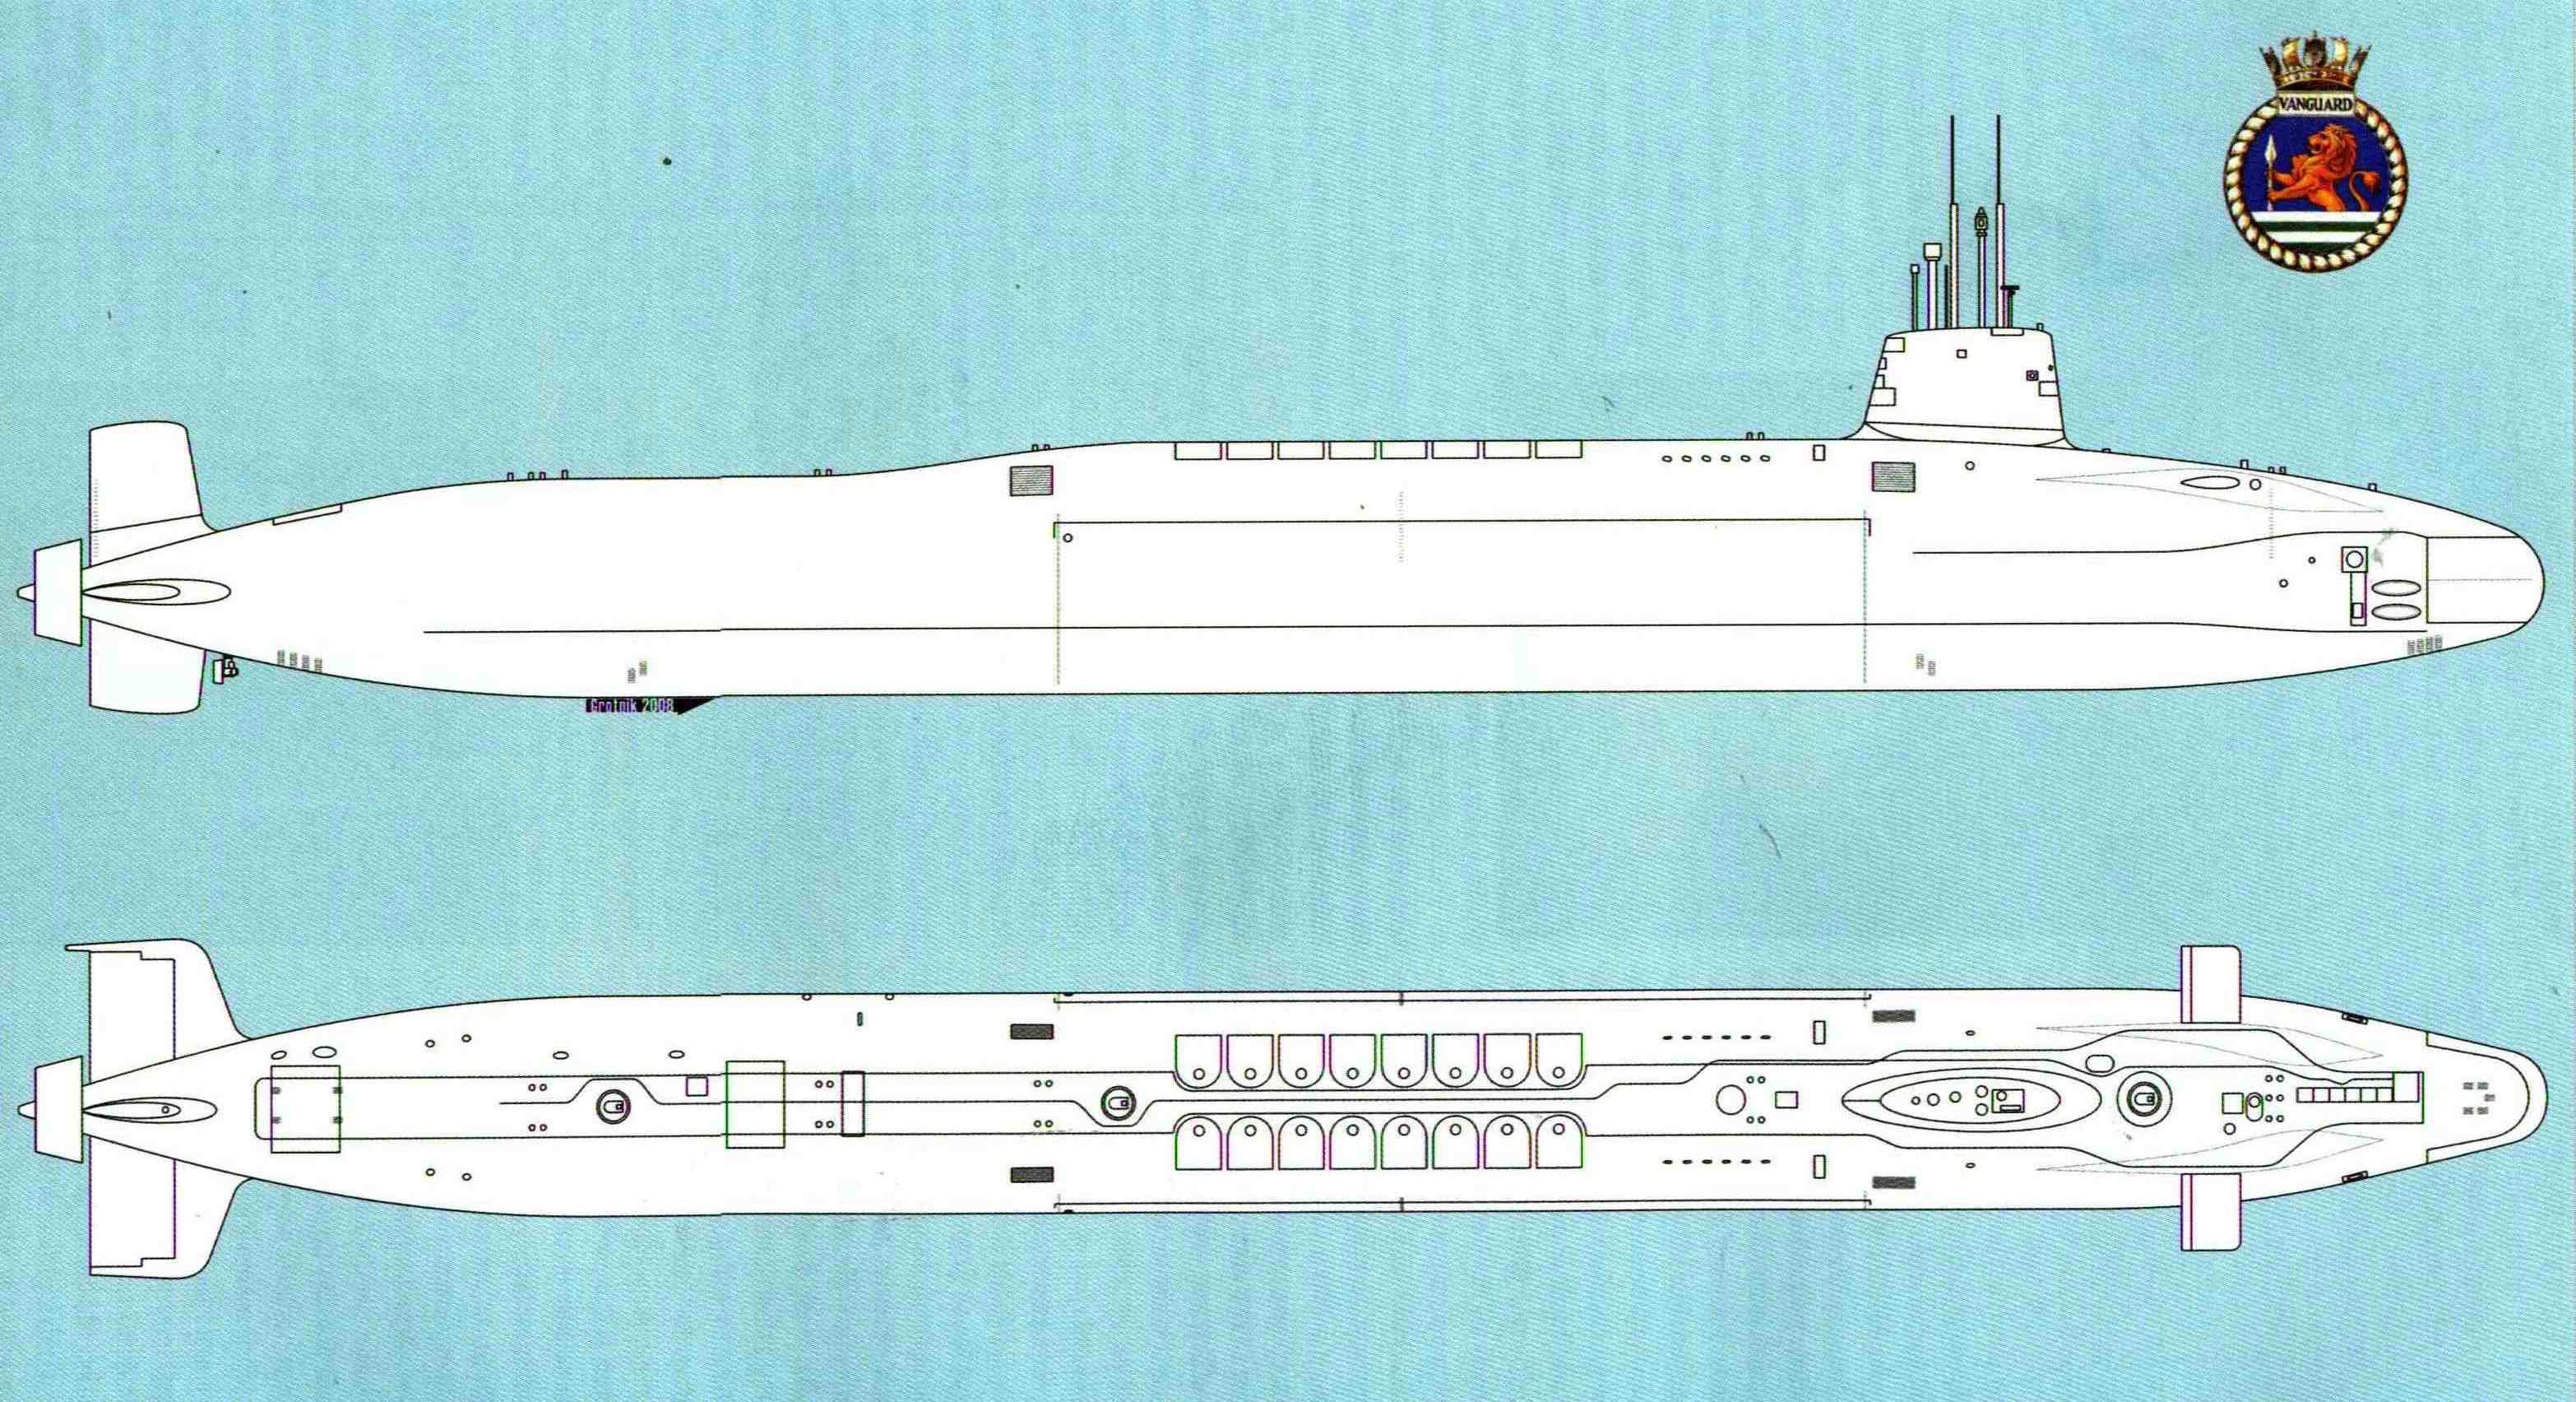 HMS Vanguard S28 blueprint